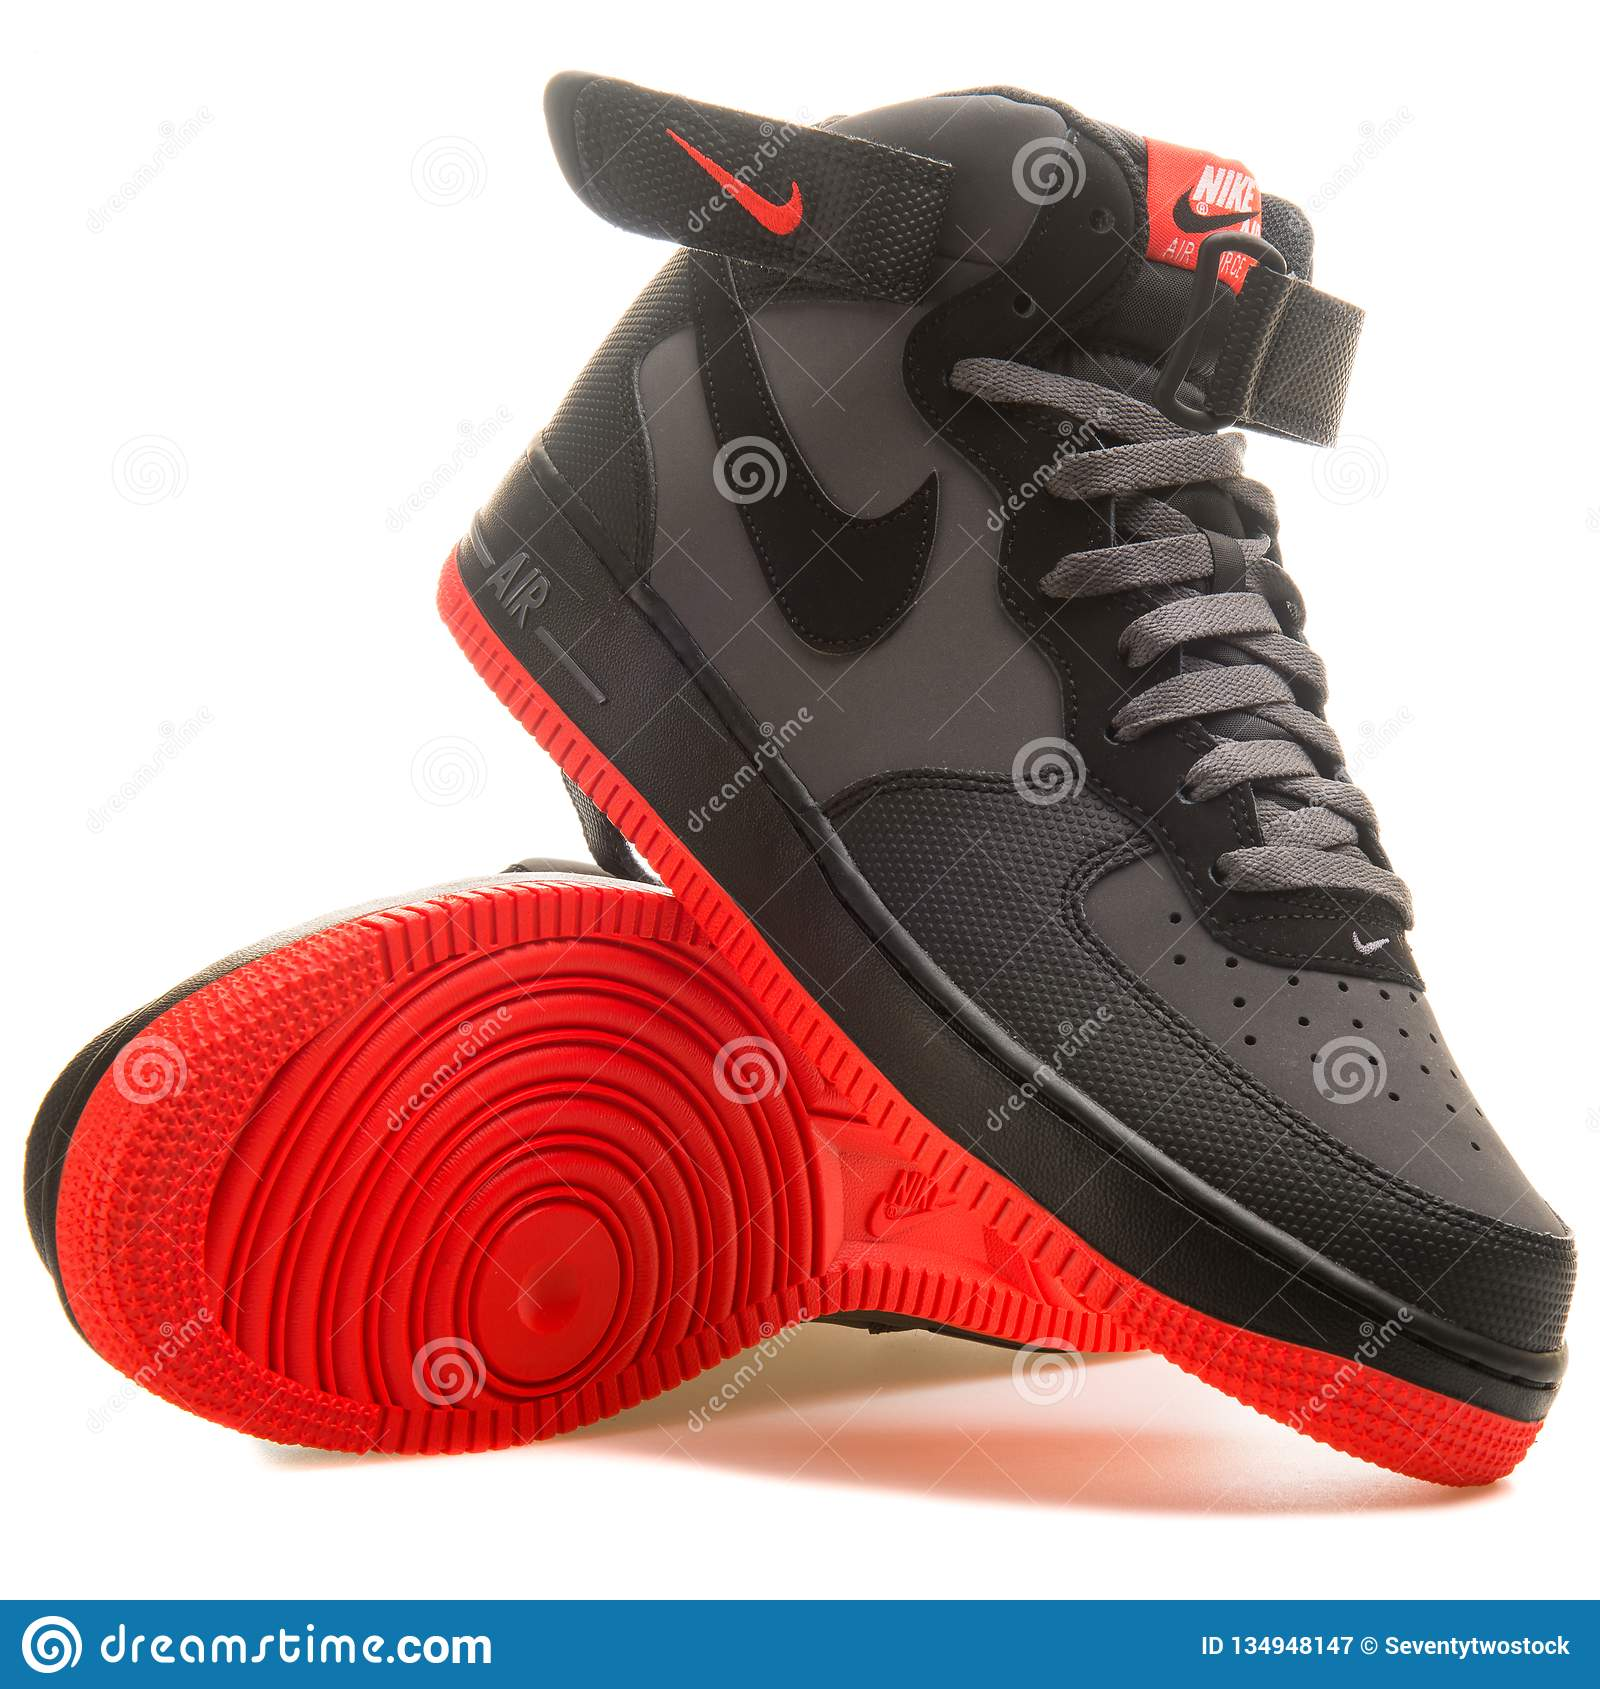 nike air force 1 rojas y blancas